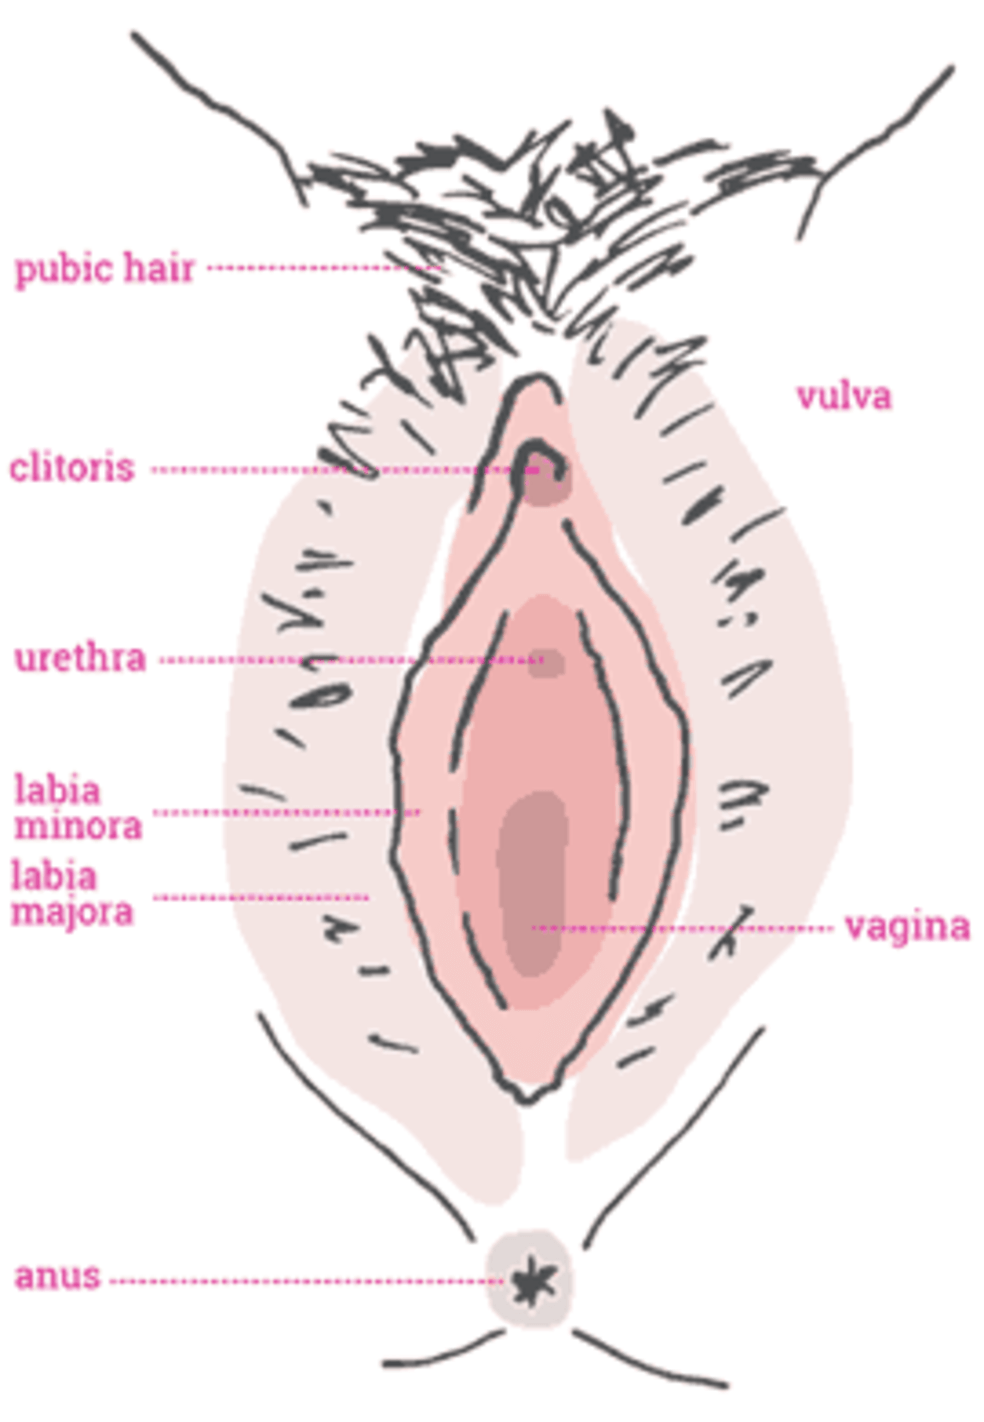 Sore clitoris labia